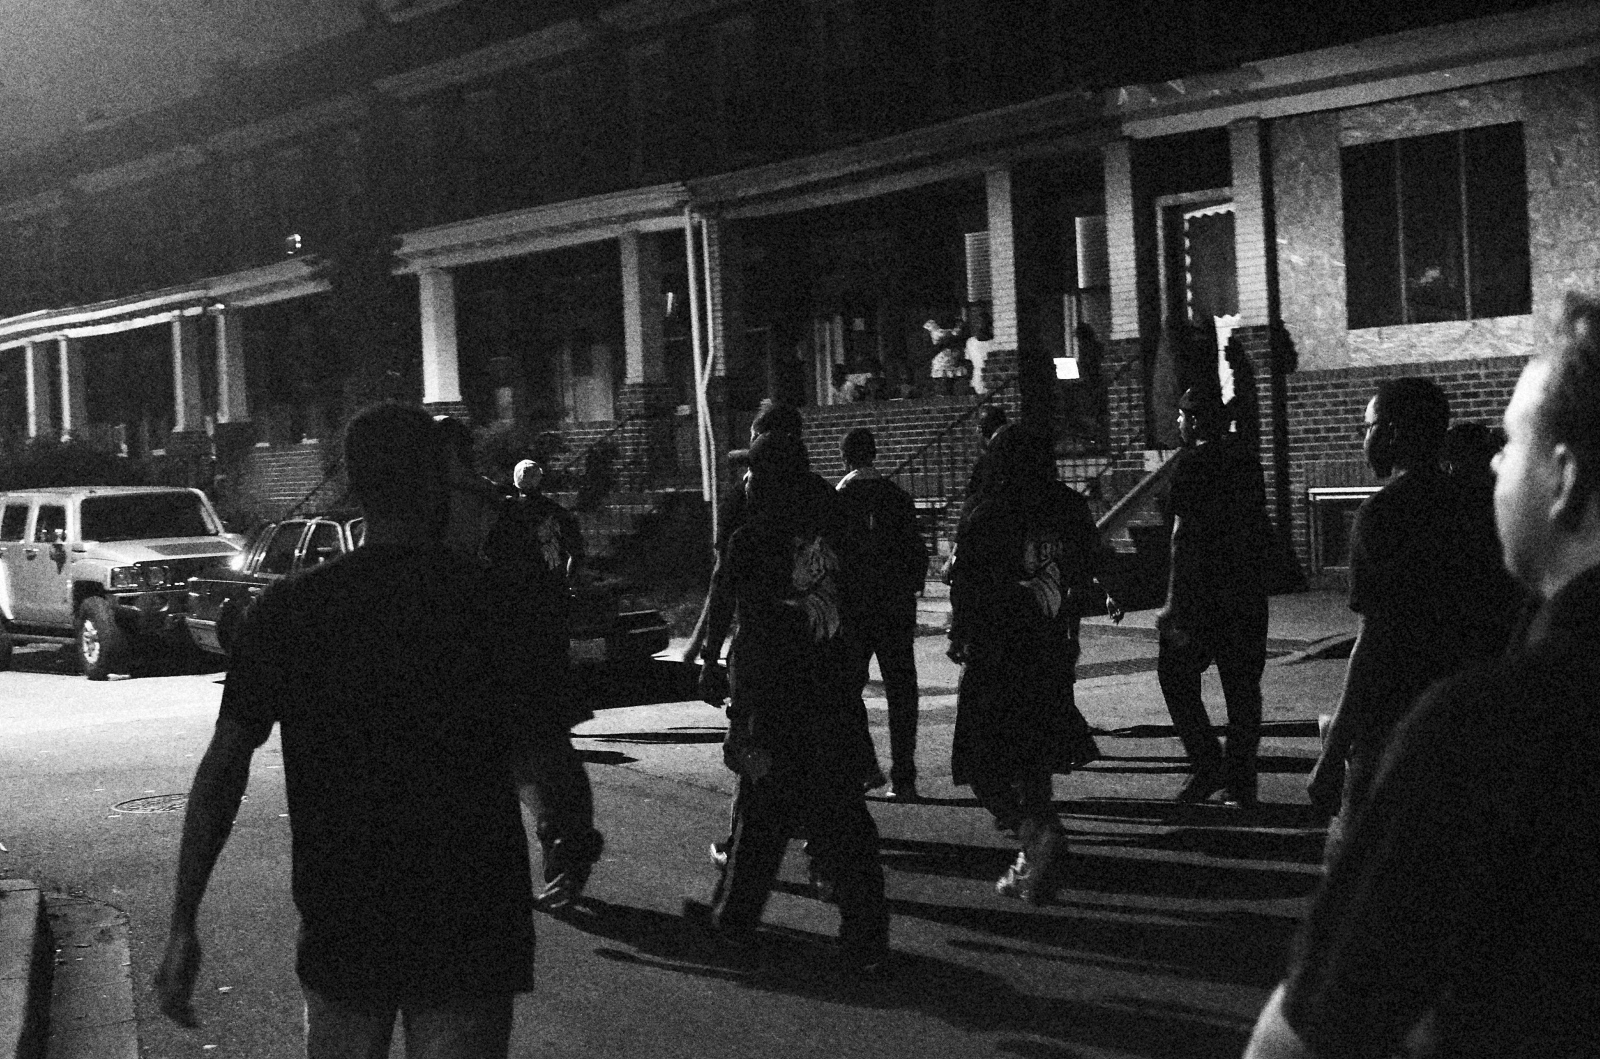 In response to the spike in homicides in 2013, Baltimore City Councilman Brandon Scott and activist Munir Bahar organized the 300 Man March, which encouraged men of all ages to walk at night through some of Baltimore's most violent neighborhoods. Marchers walk through a neighborhood in East Baltimore on August 2, 2013.